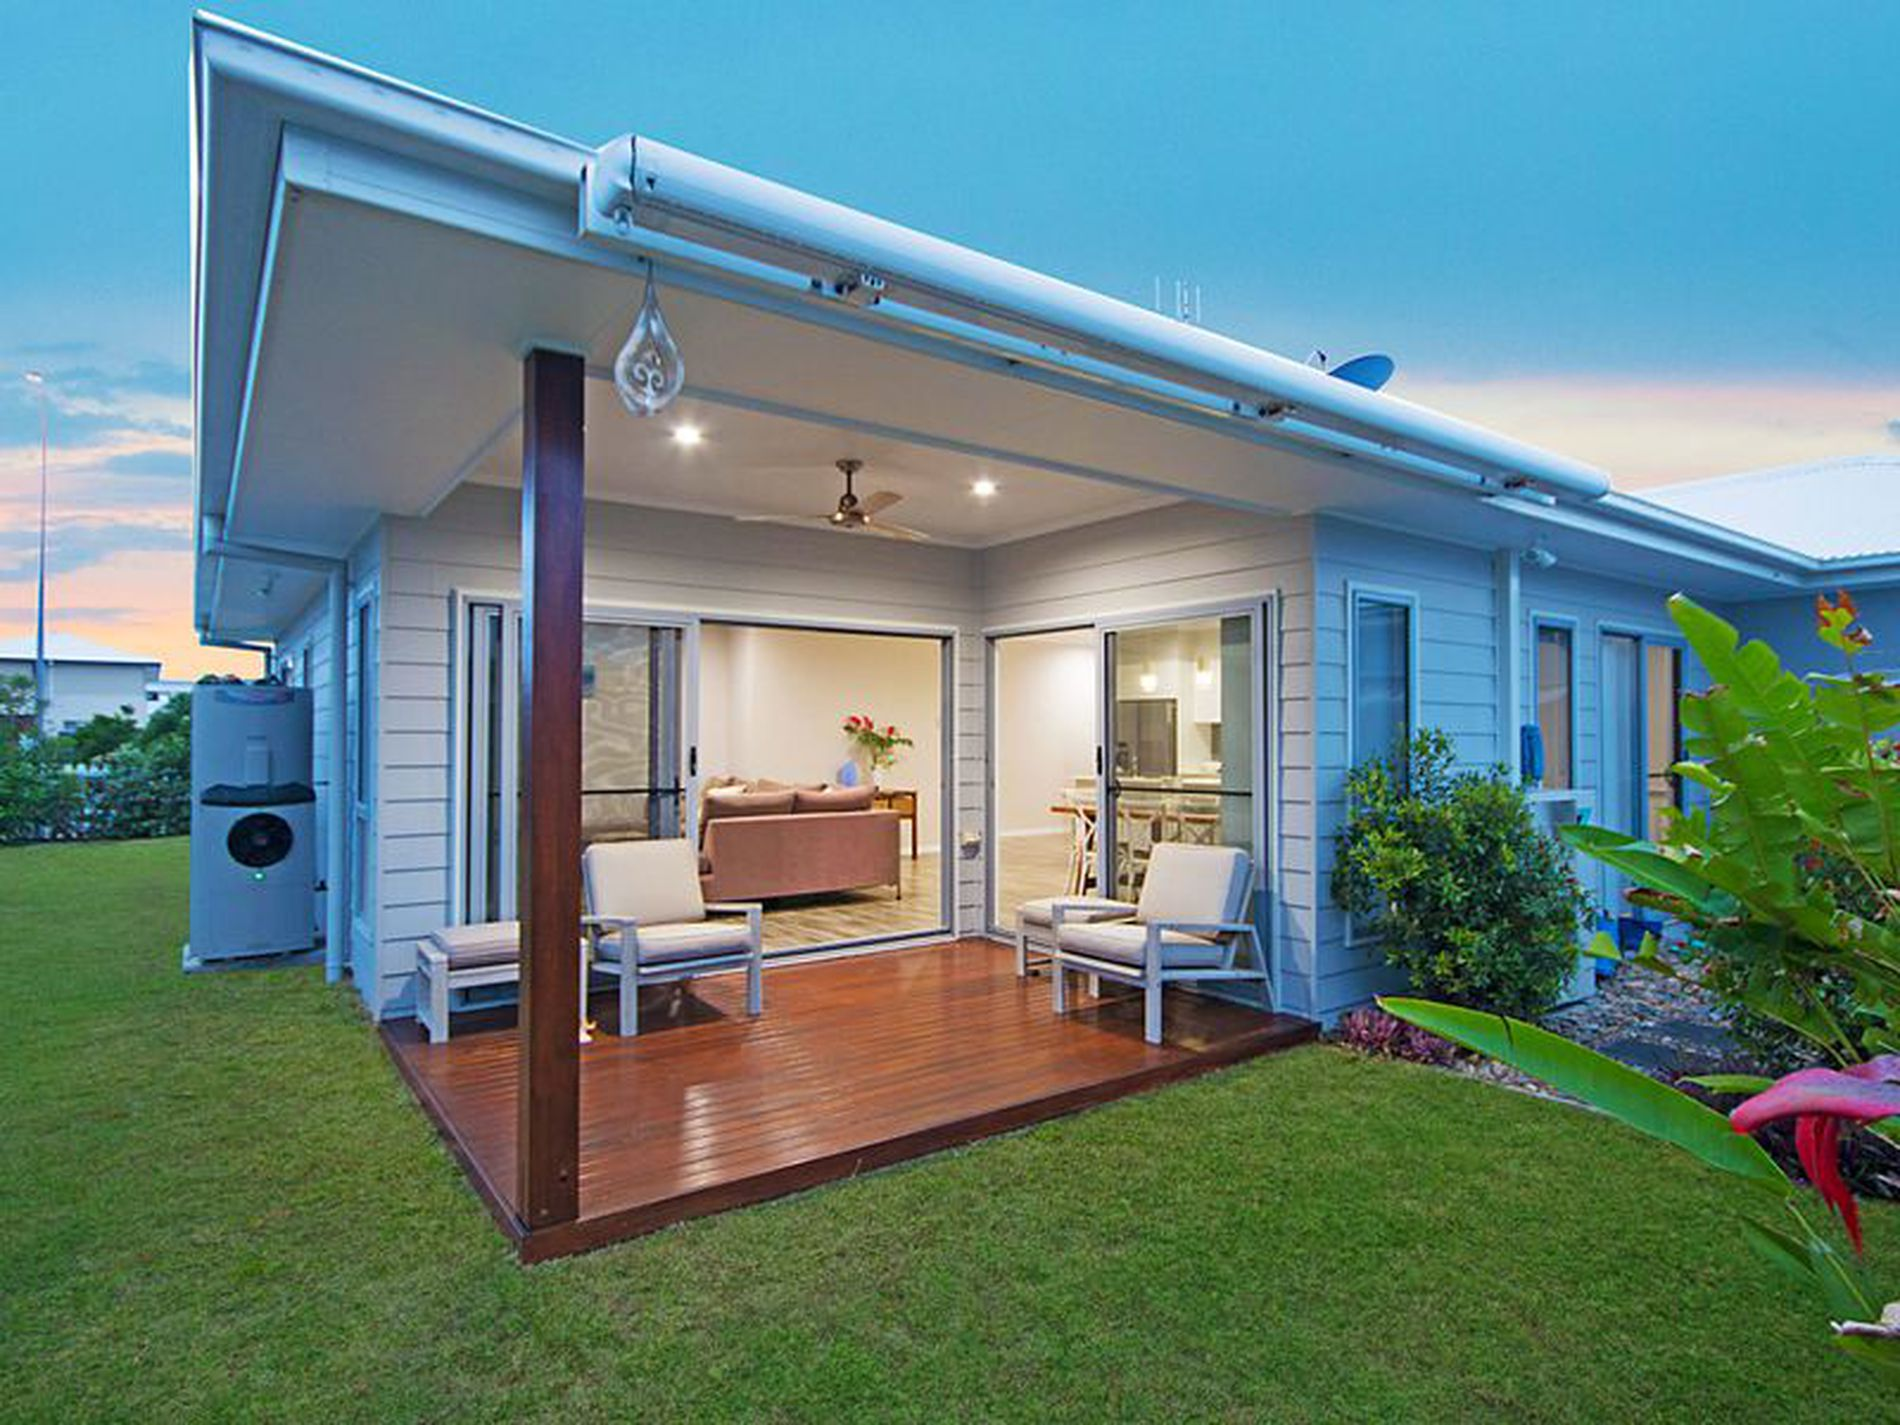 276 Casuarina Way, Kingscliff